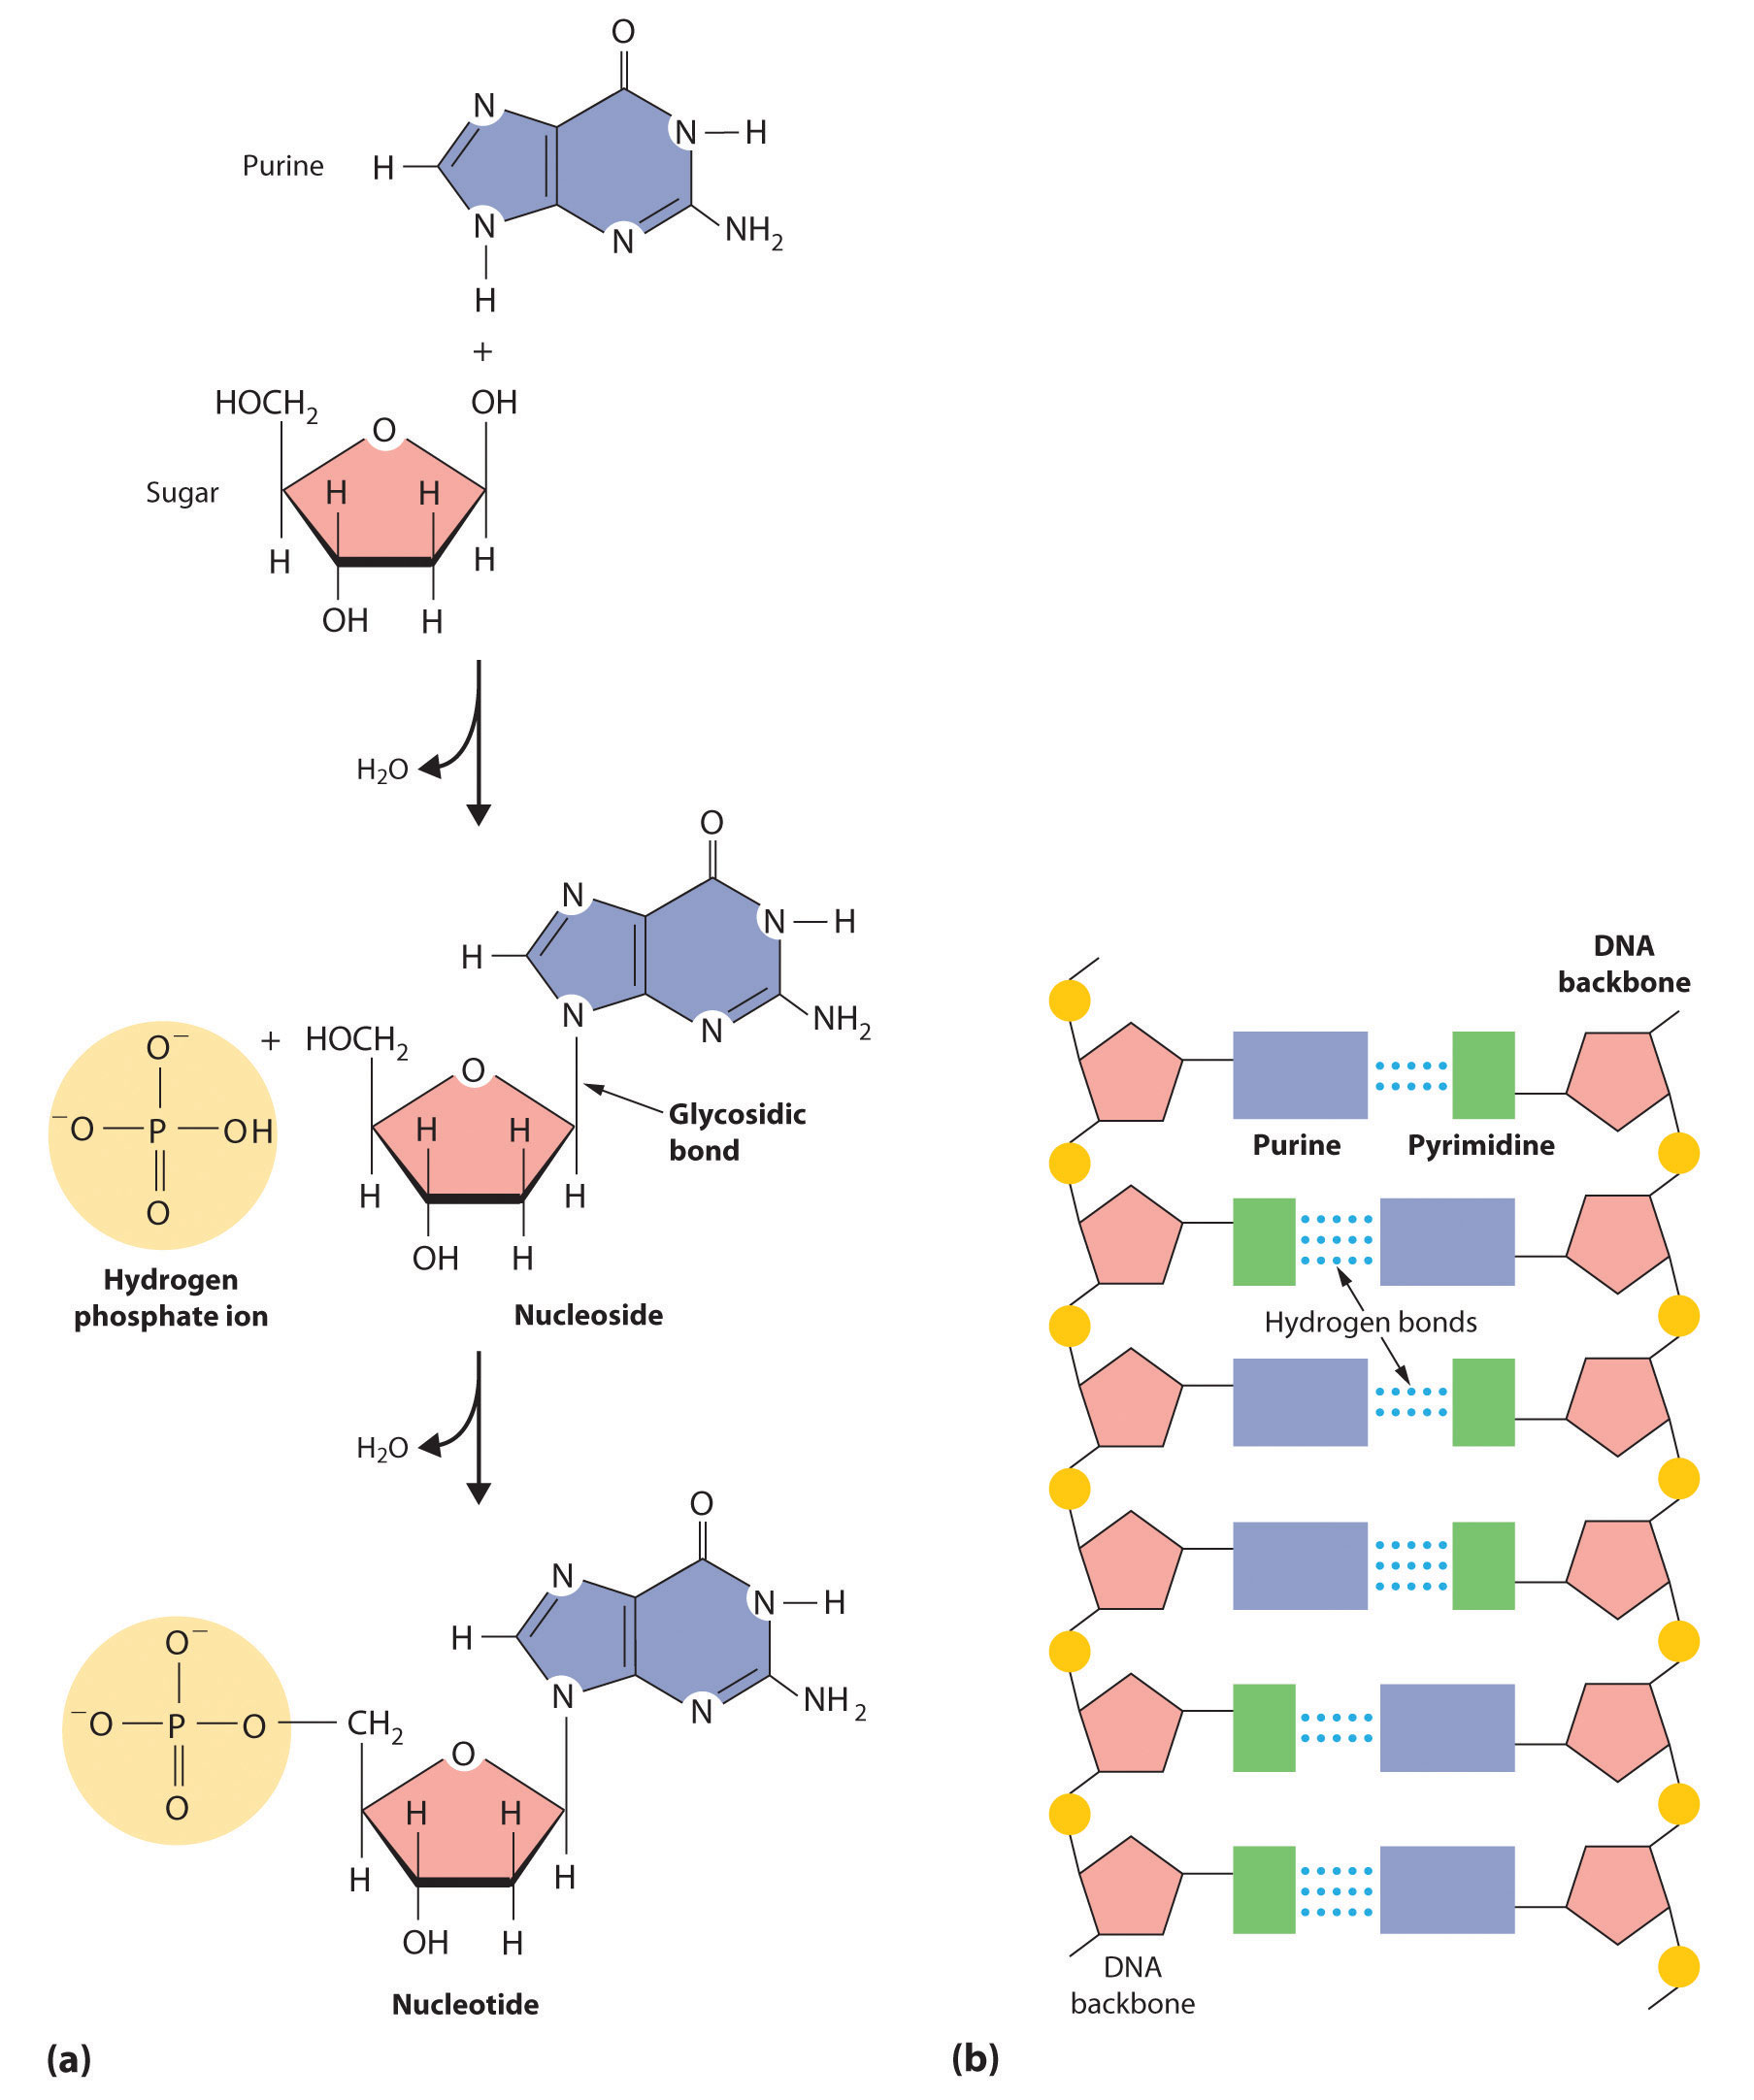 Chapter 05 - The Structure and Function of Macromolecules